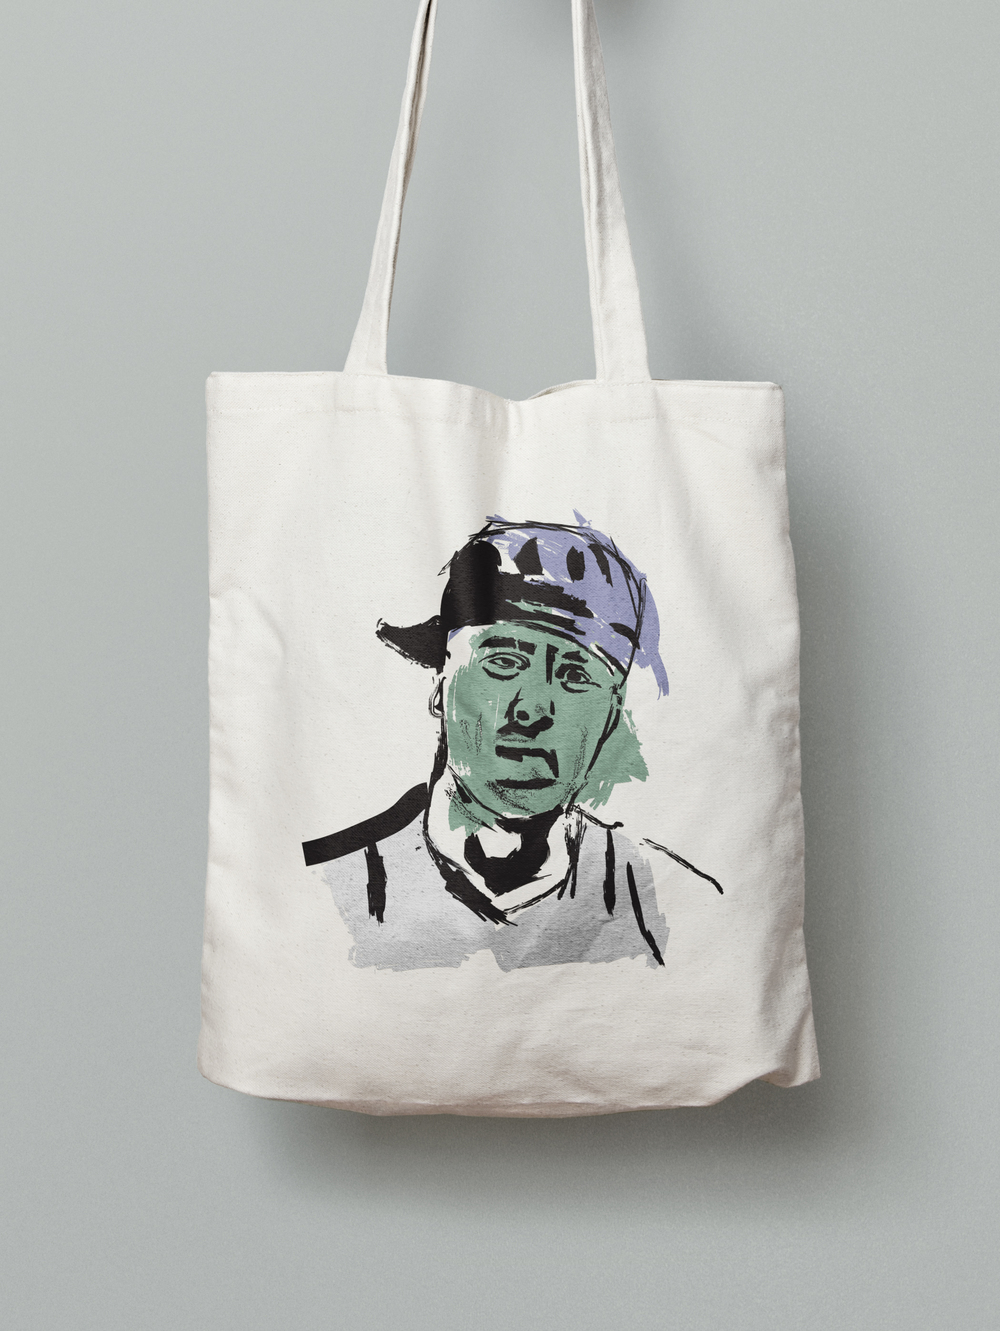 Canvas Tote Bag MockUp-Nicky Jam2.jpg